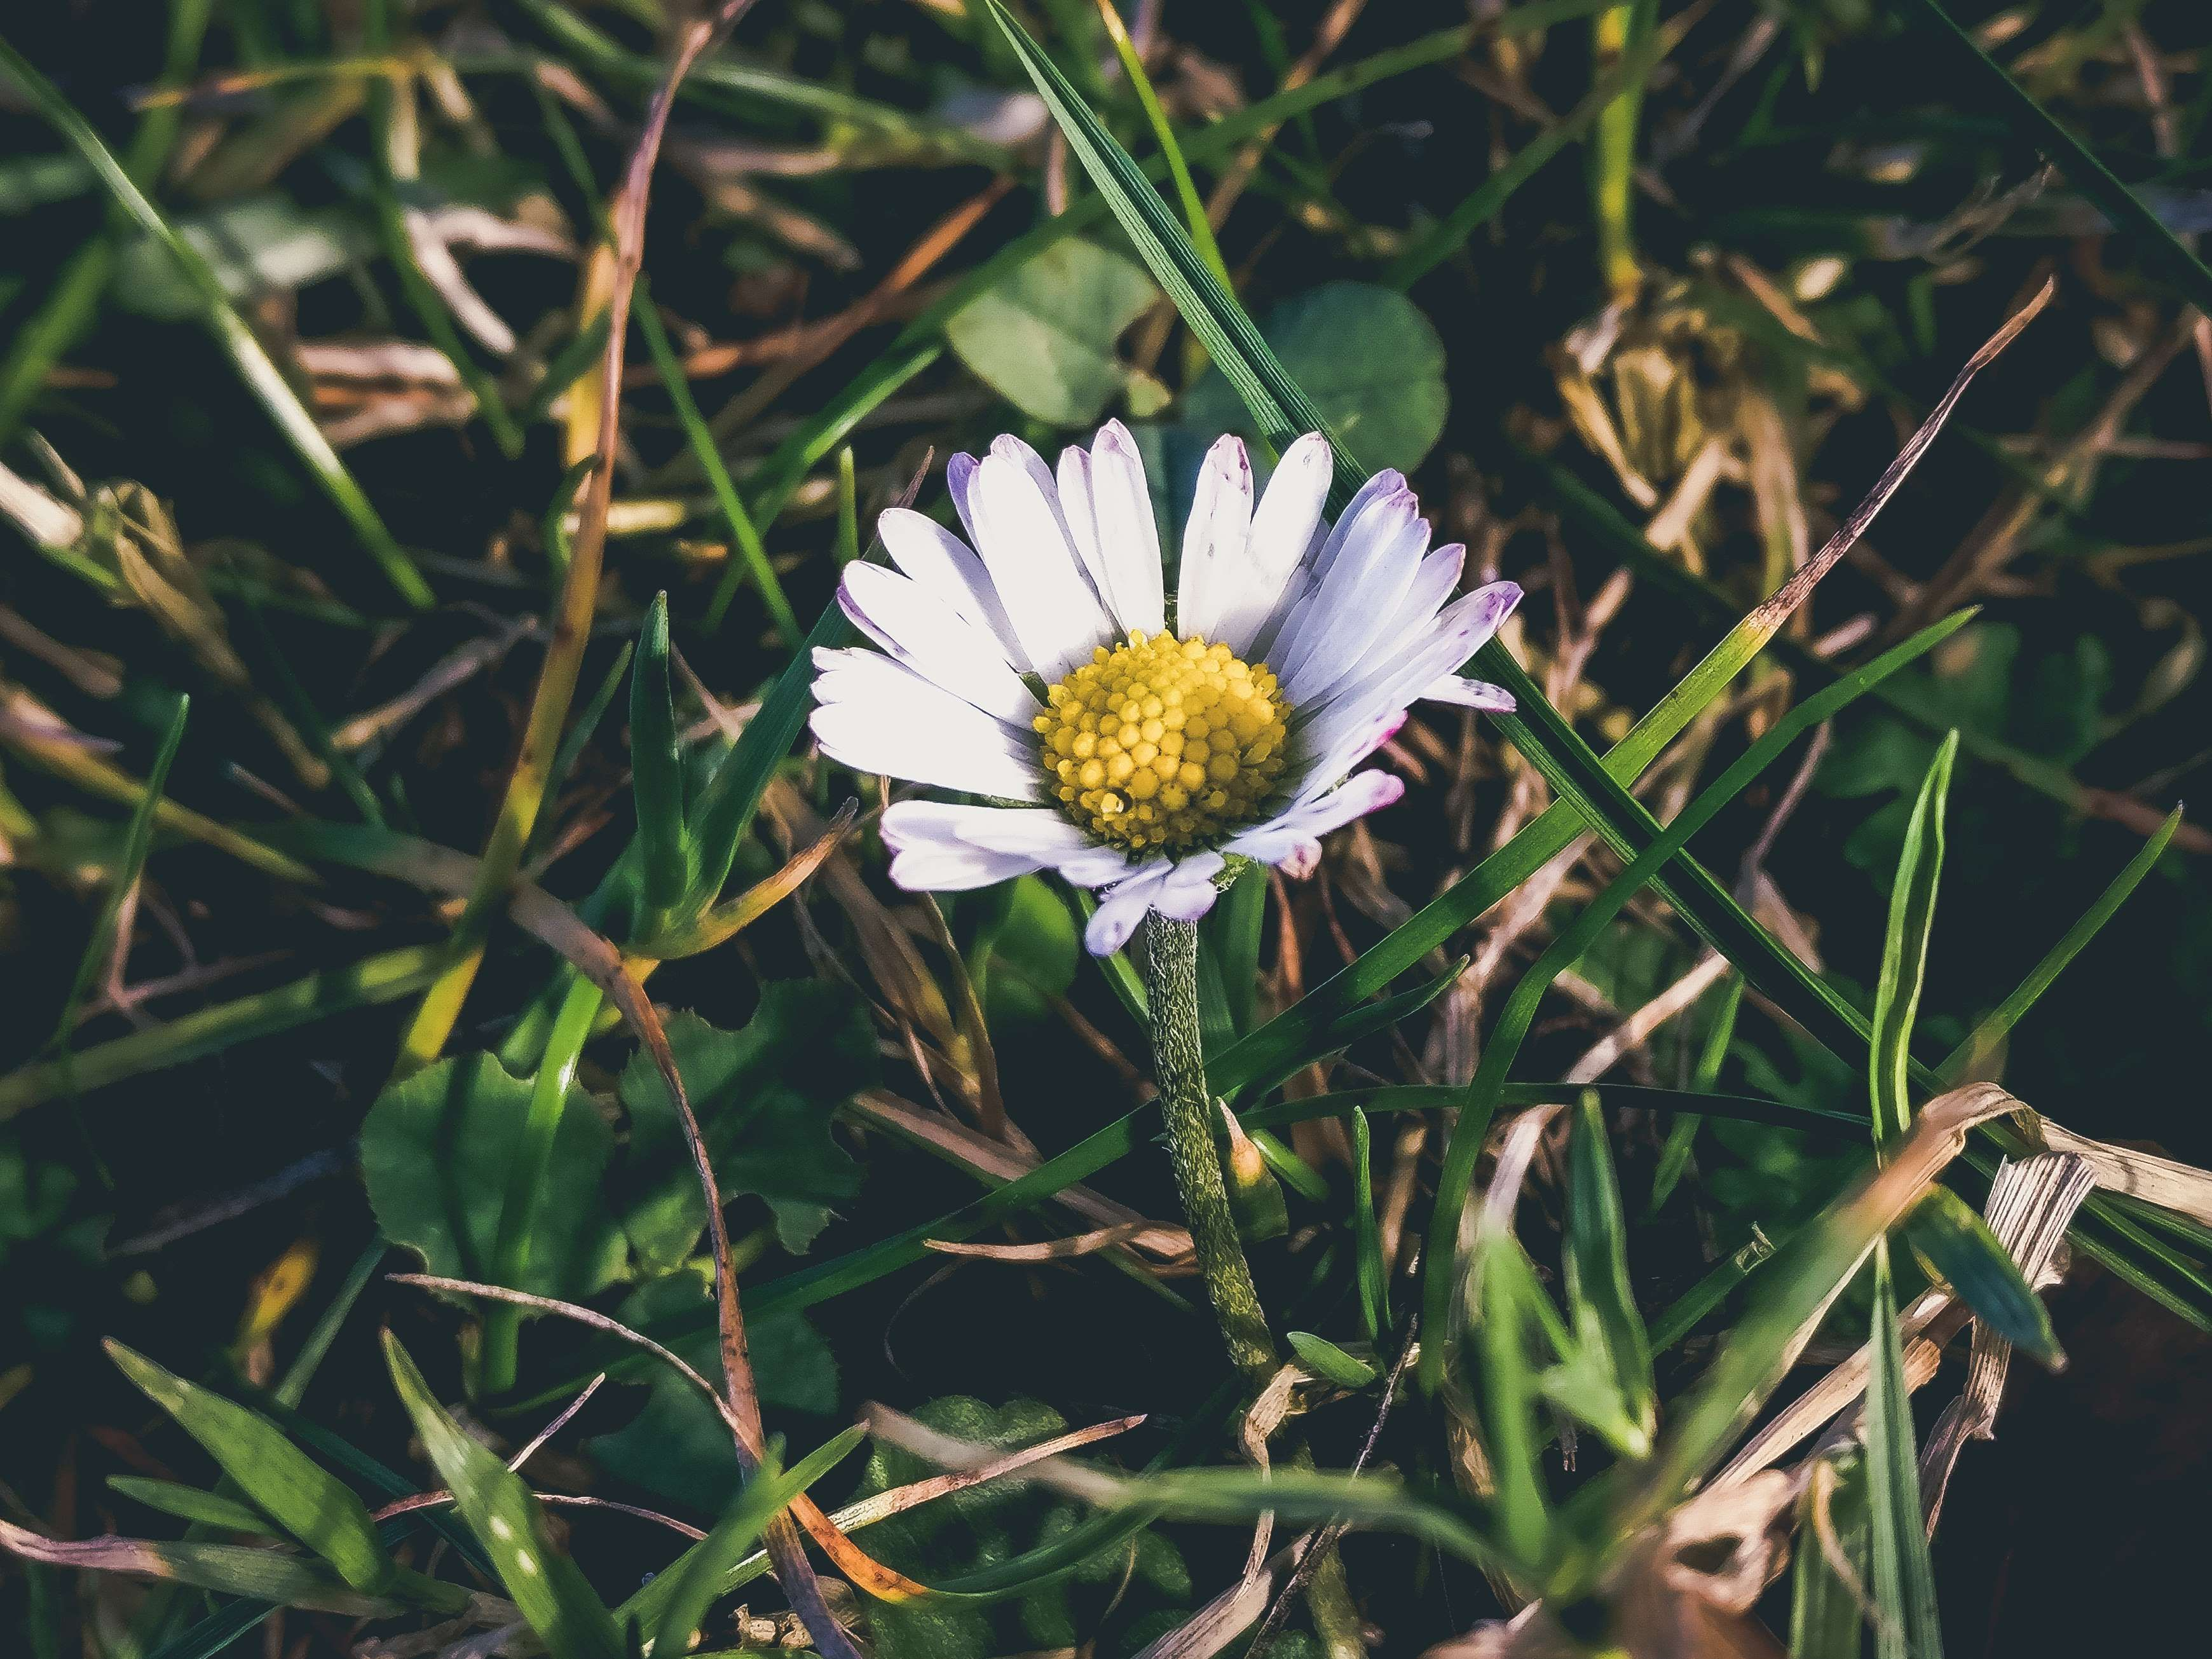 #autumn #bloom #blooming #blossom #bright #close up #color #daisy #fall #flora #flower #grass #growth #leaf #nature #outdoors #petals #pollen #season #summer